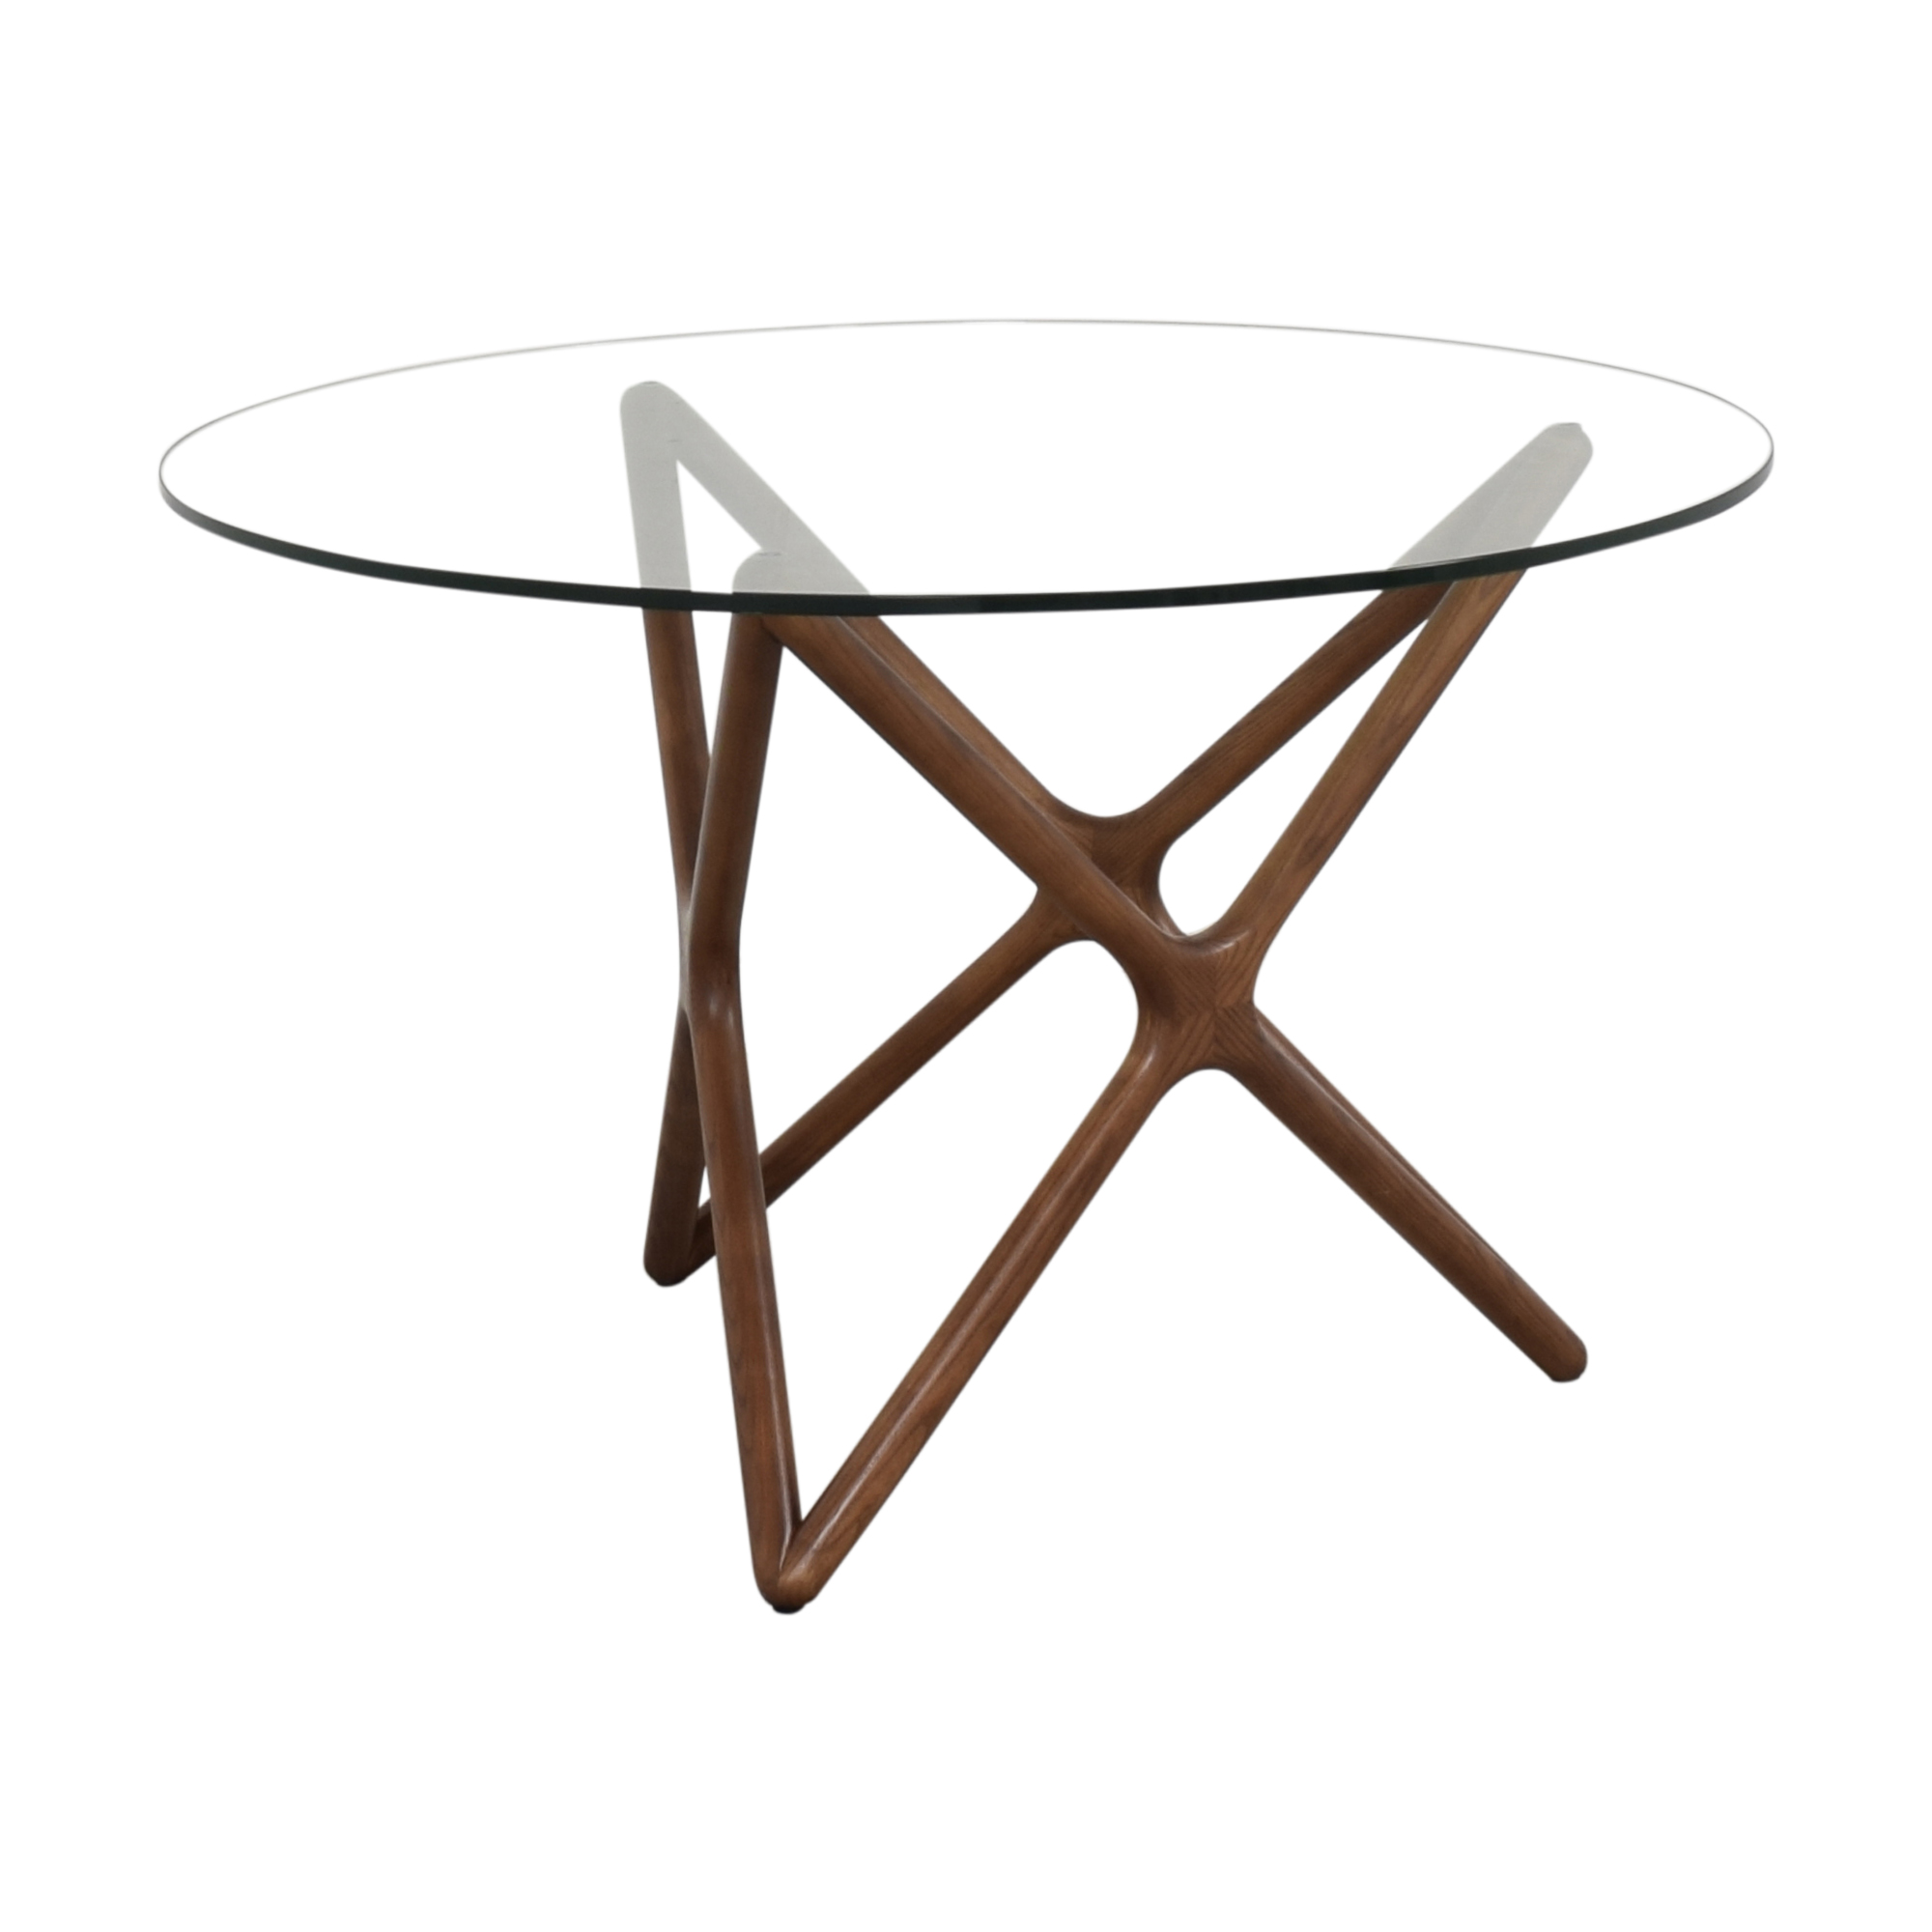 Langley Street Langley Street Bernardino Star Dining Table dark brown and clear